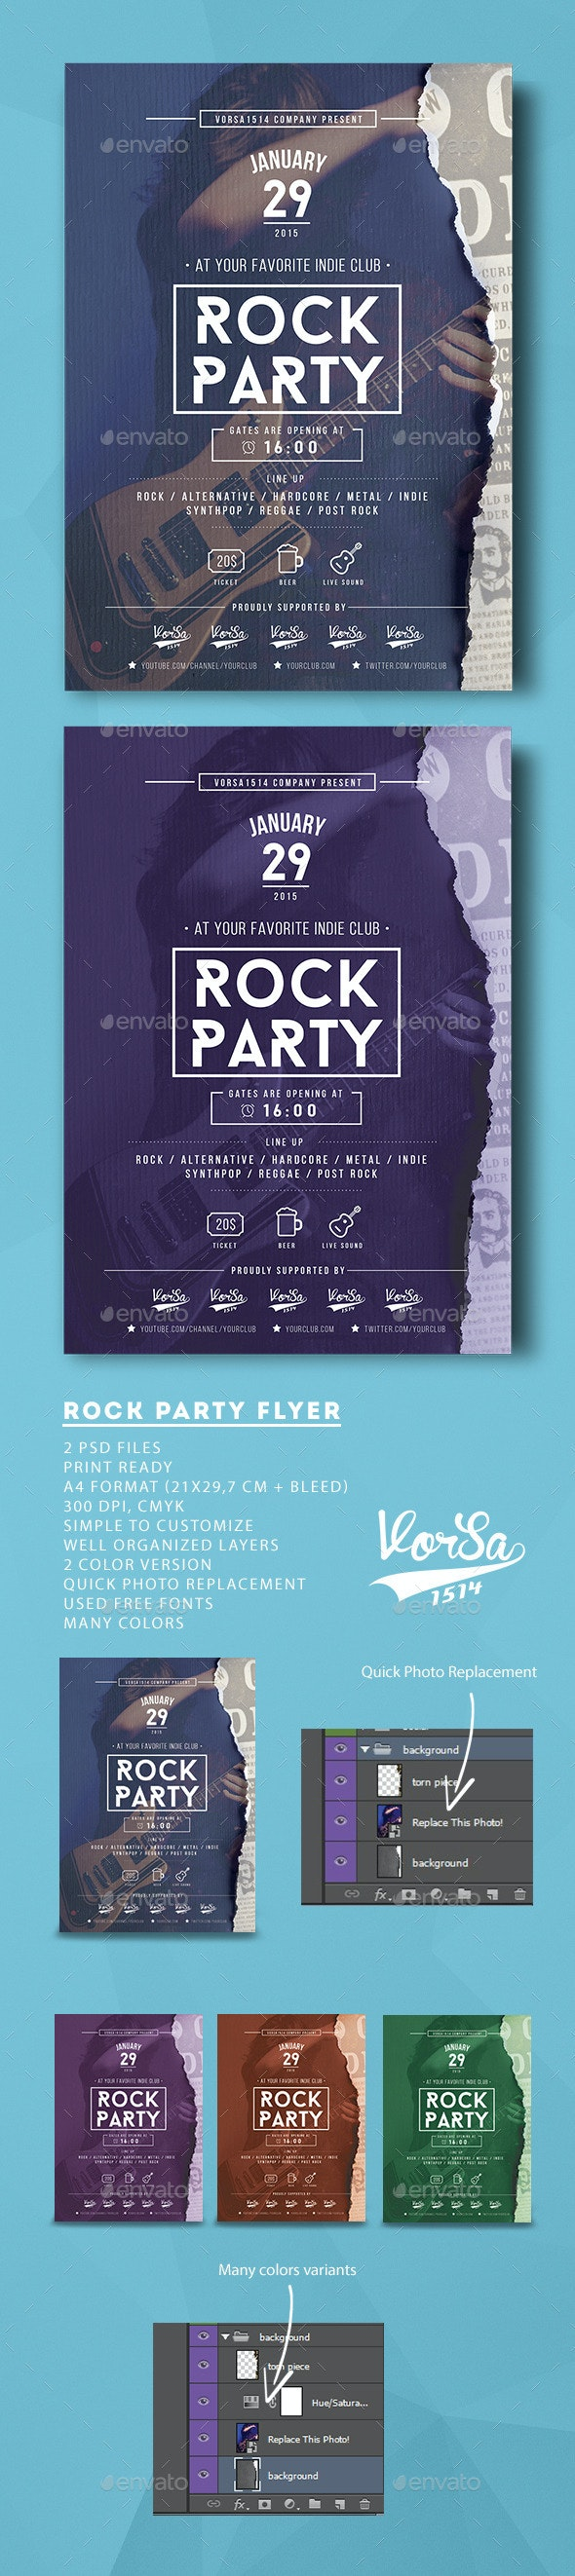 Rock Party Flyer - Clubs & Parties Events